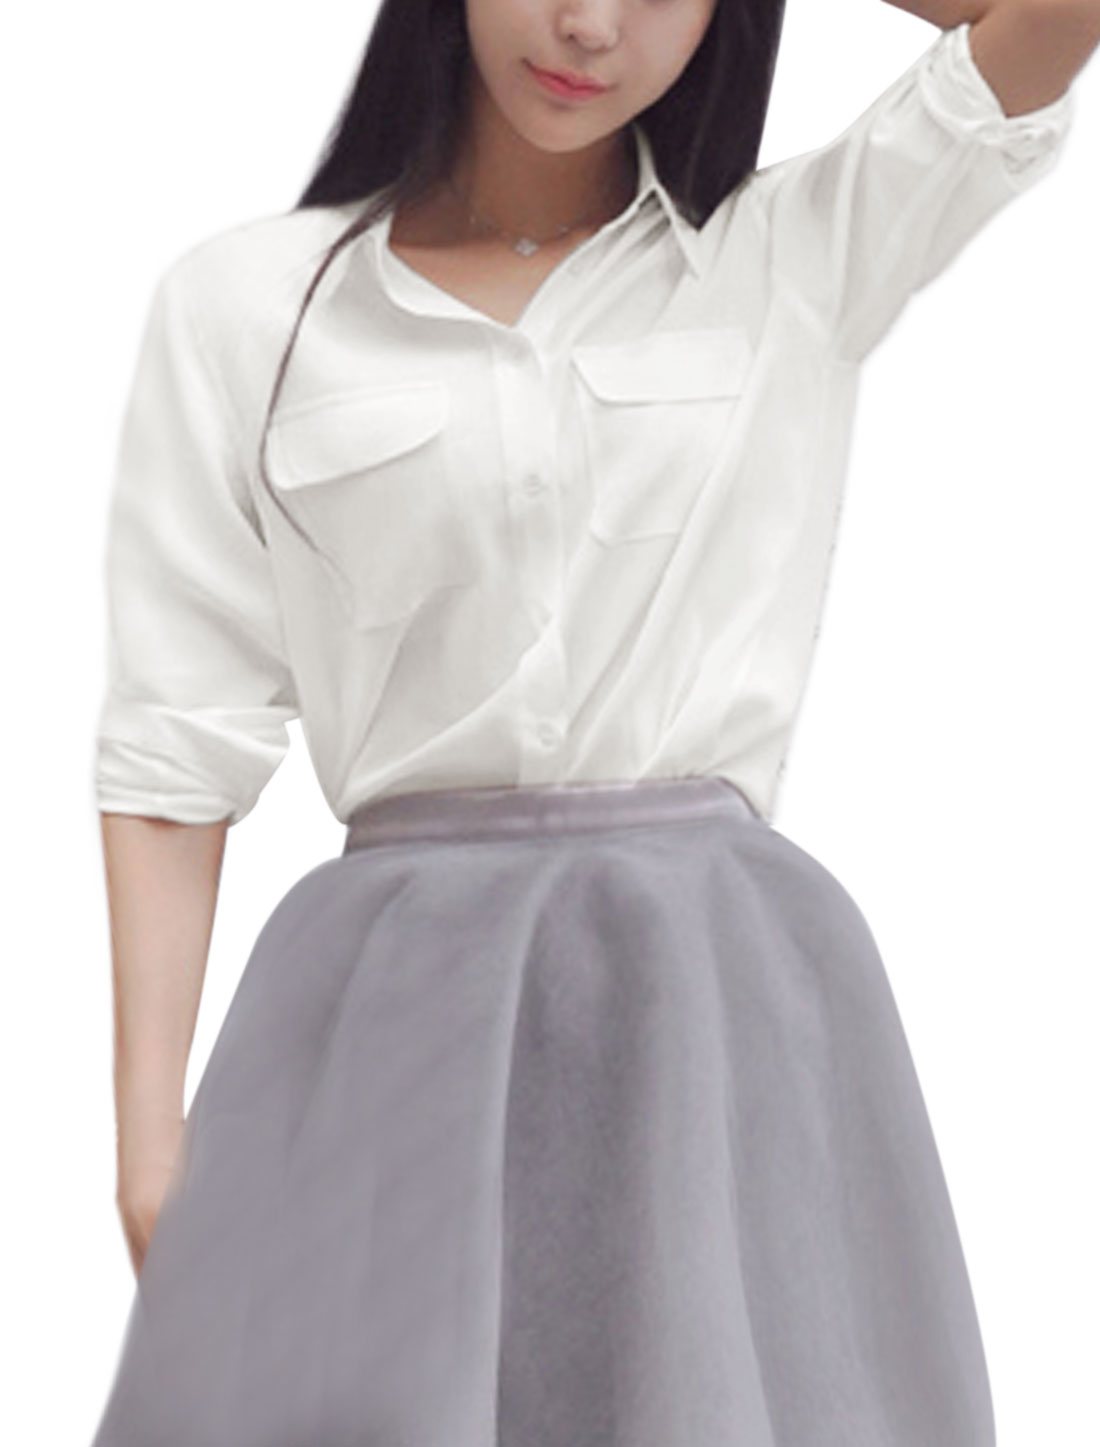 Women Point Collar Long Sleeves Two Flap Pockets Shirt White XS